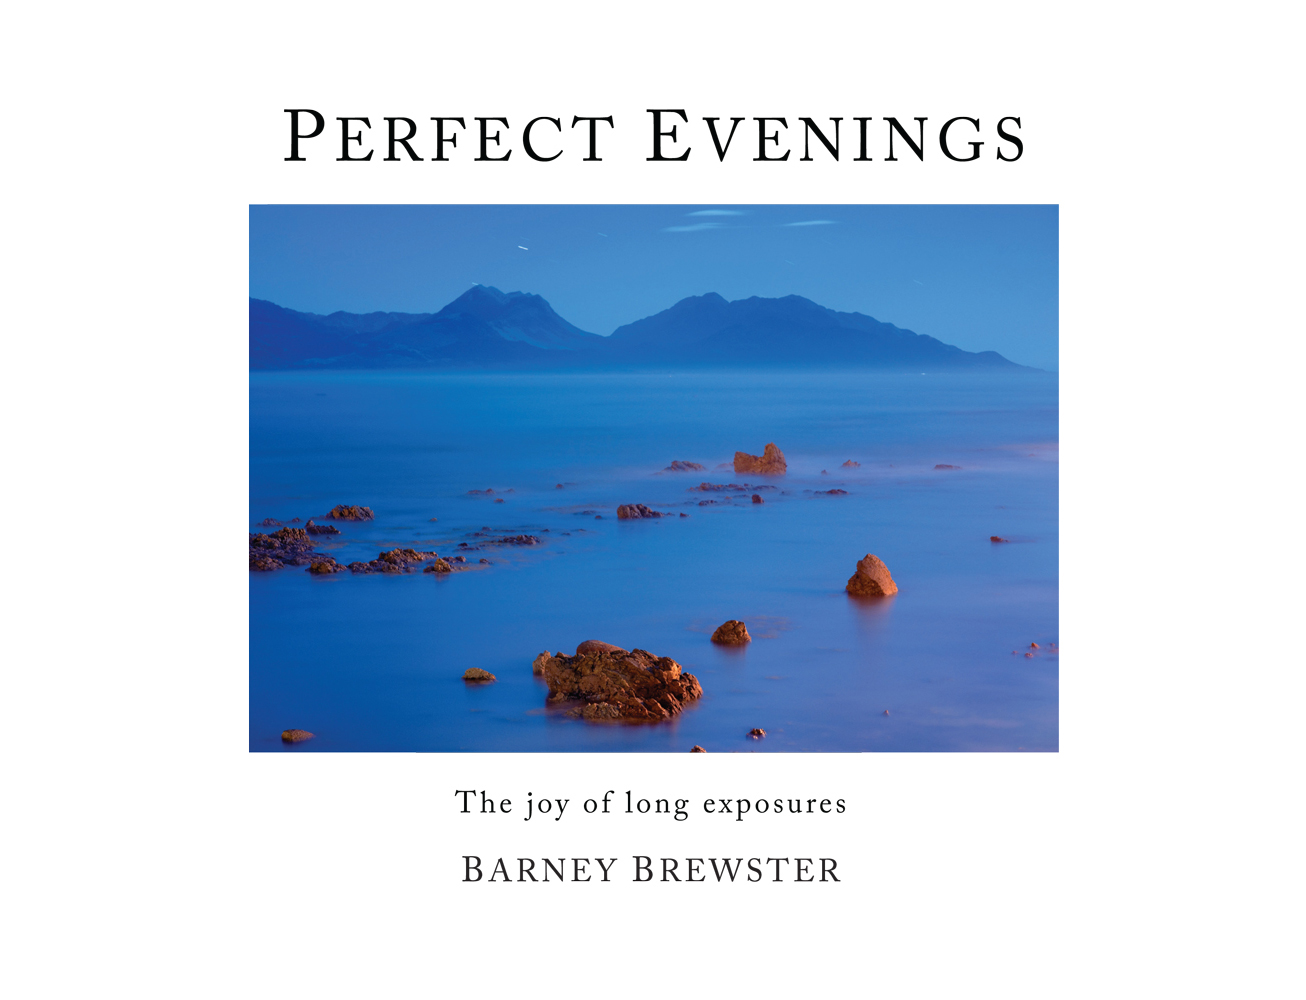 Perfect Evenings - Printed book